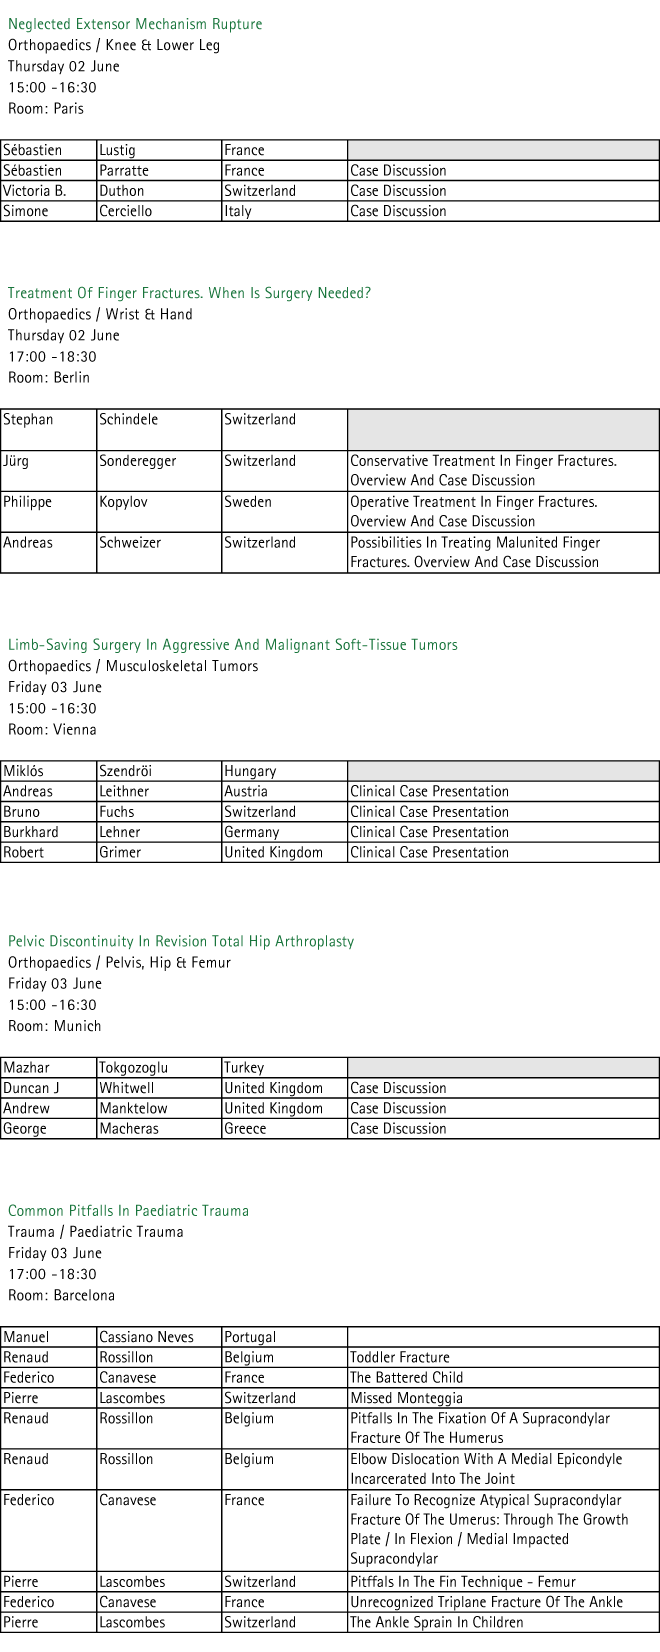 Programme for the Complex Case Discussion Sessions (CCD - 90 minutes)